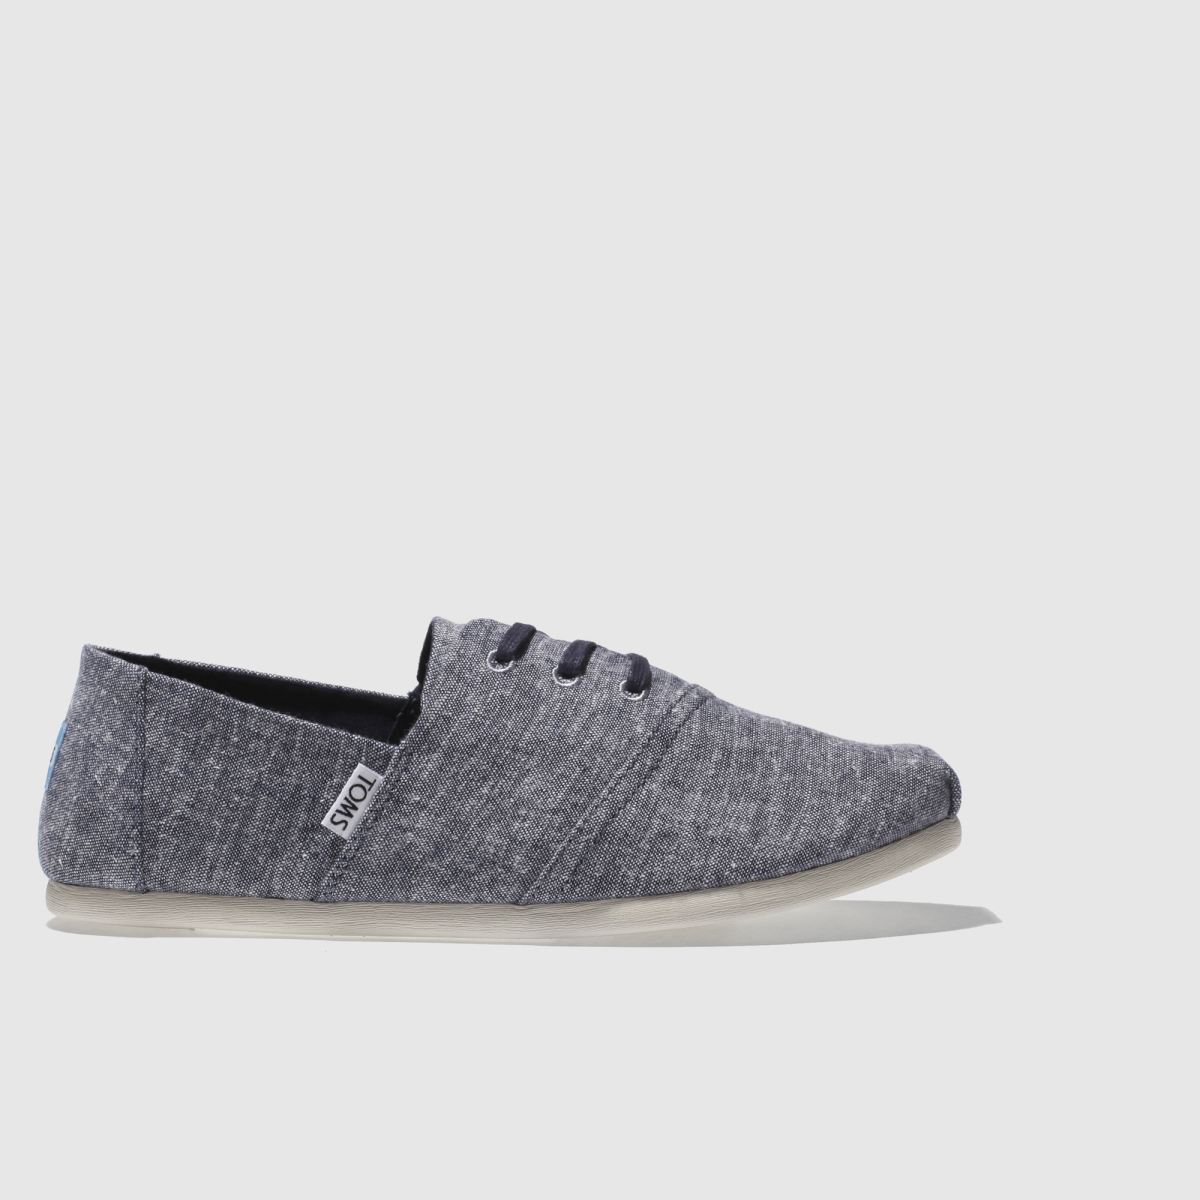 Toms Navy & White Hermosa Shoes